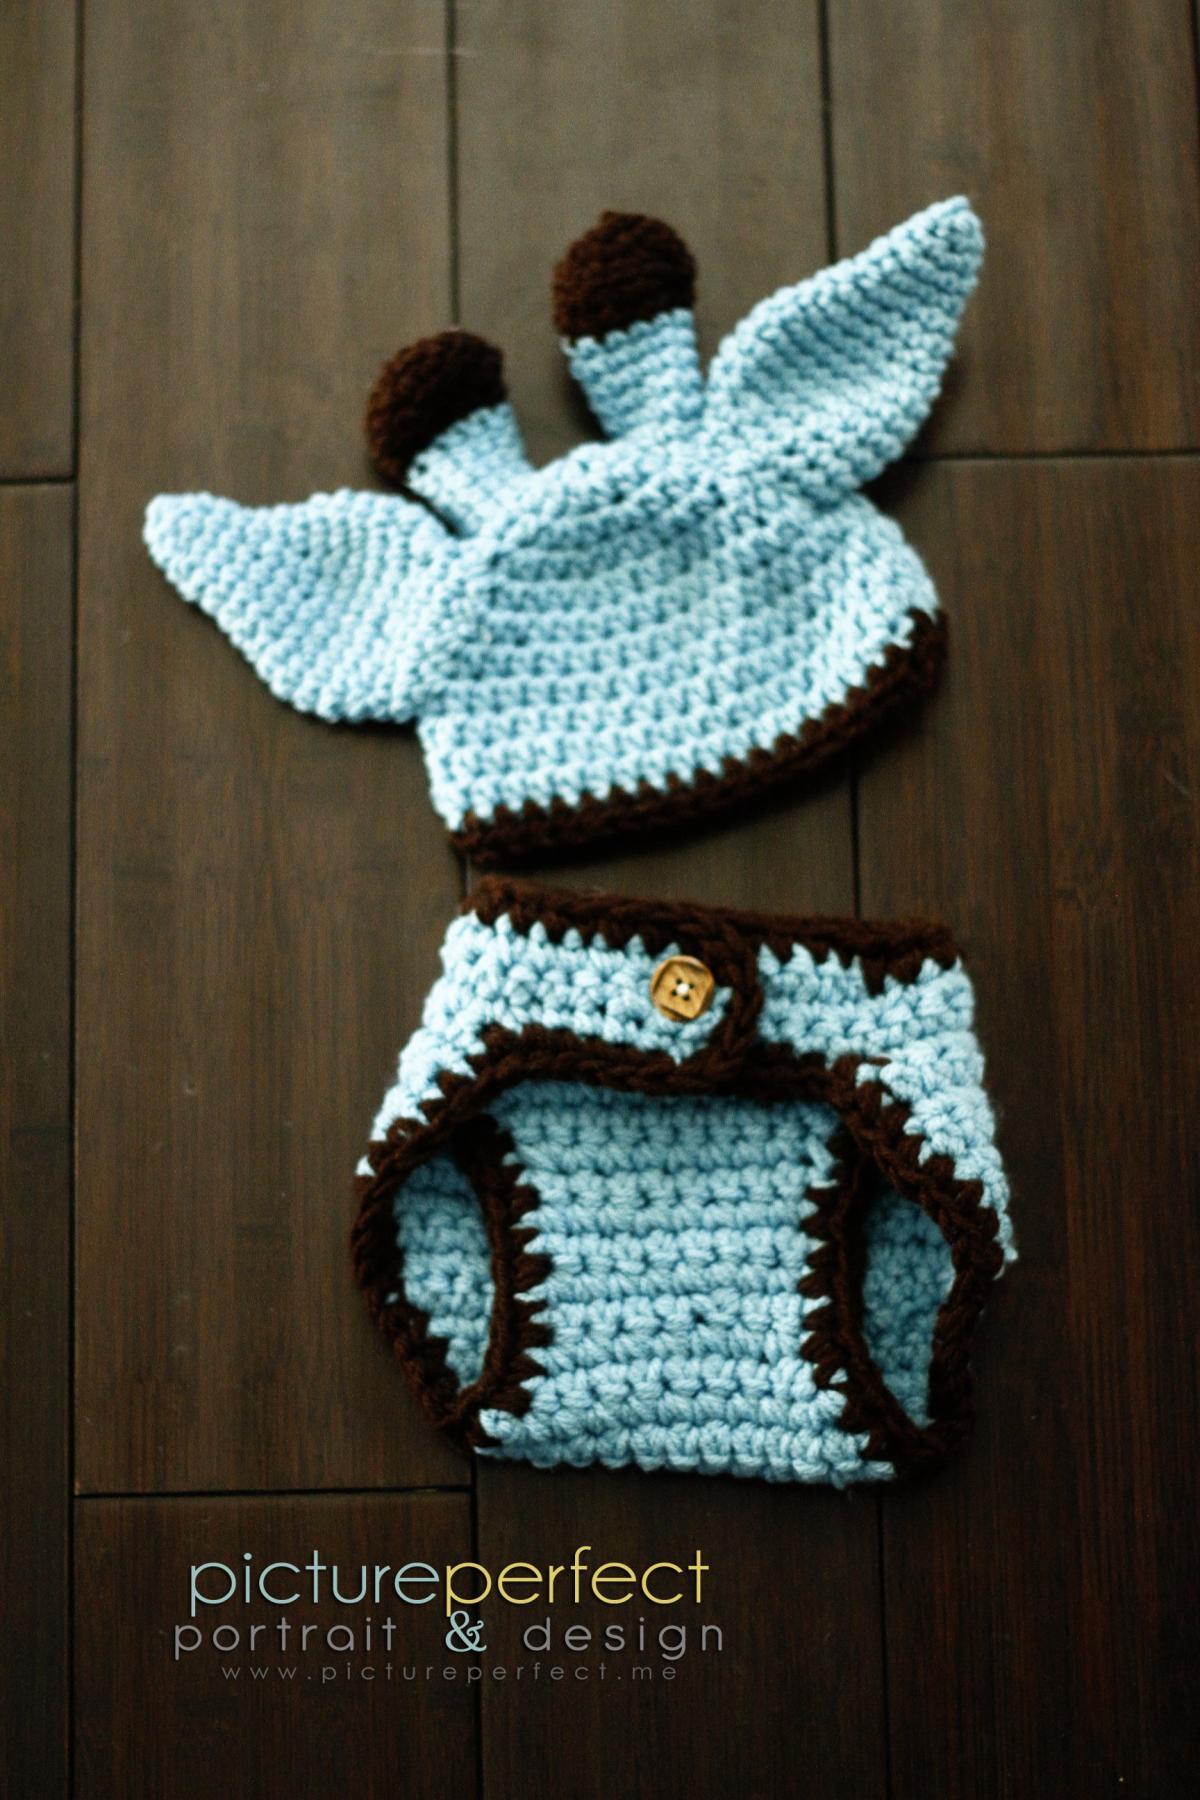 Baby Giraffe Hat Knitting Pattern : Crochet Baby Giraffe Hat And Diaper Cover Set - Costume ...